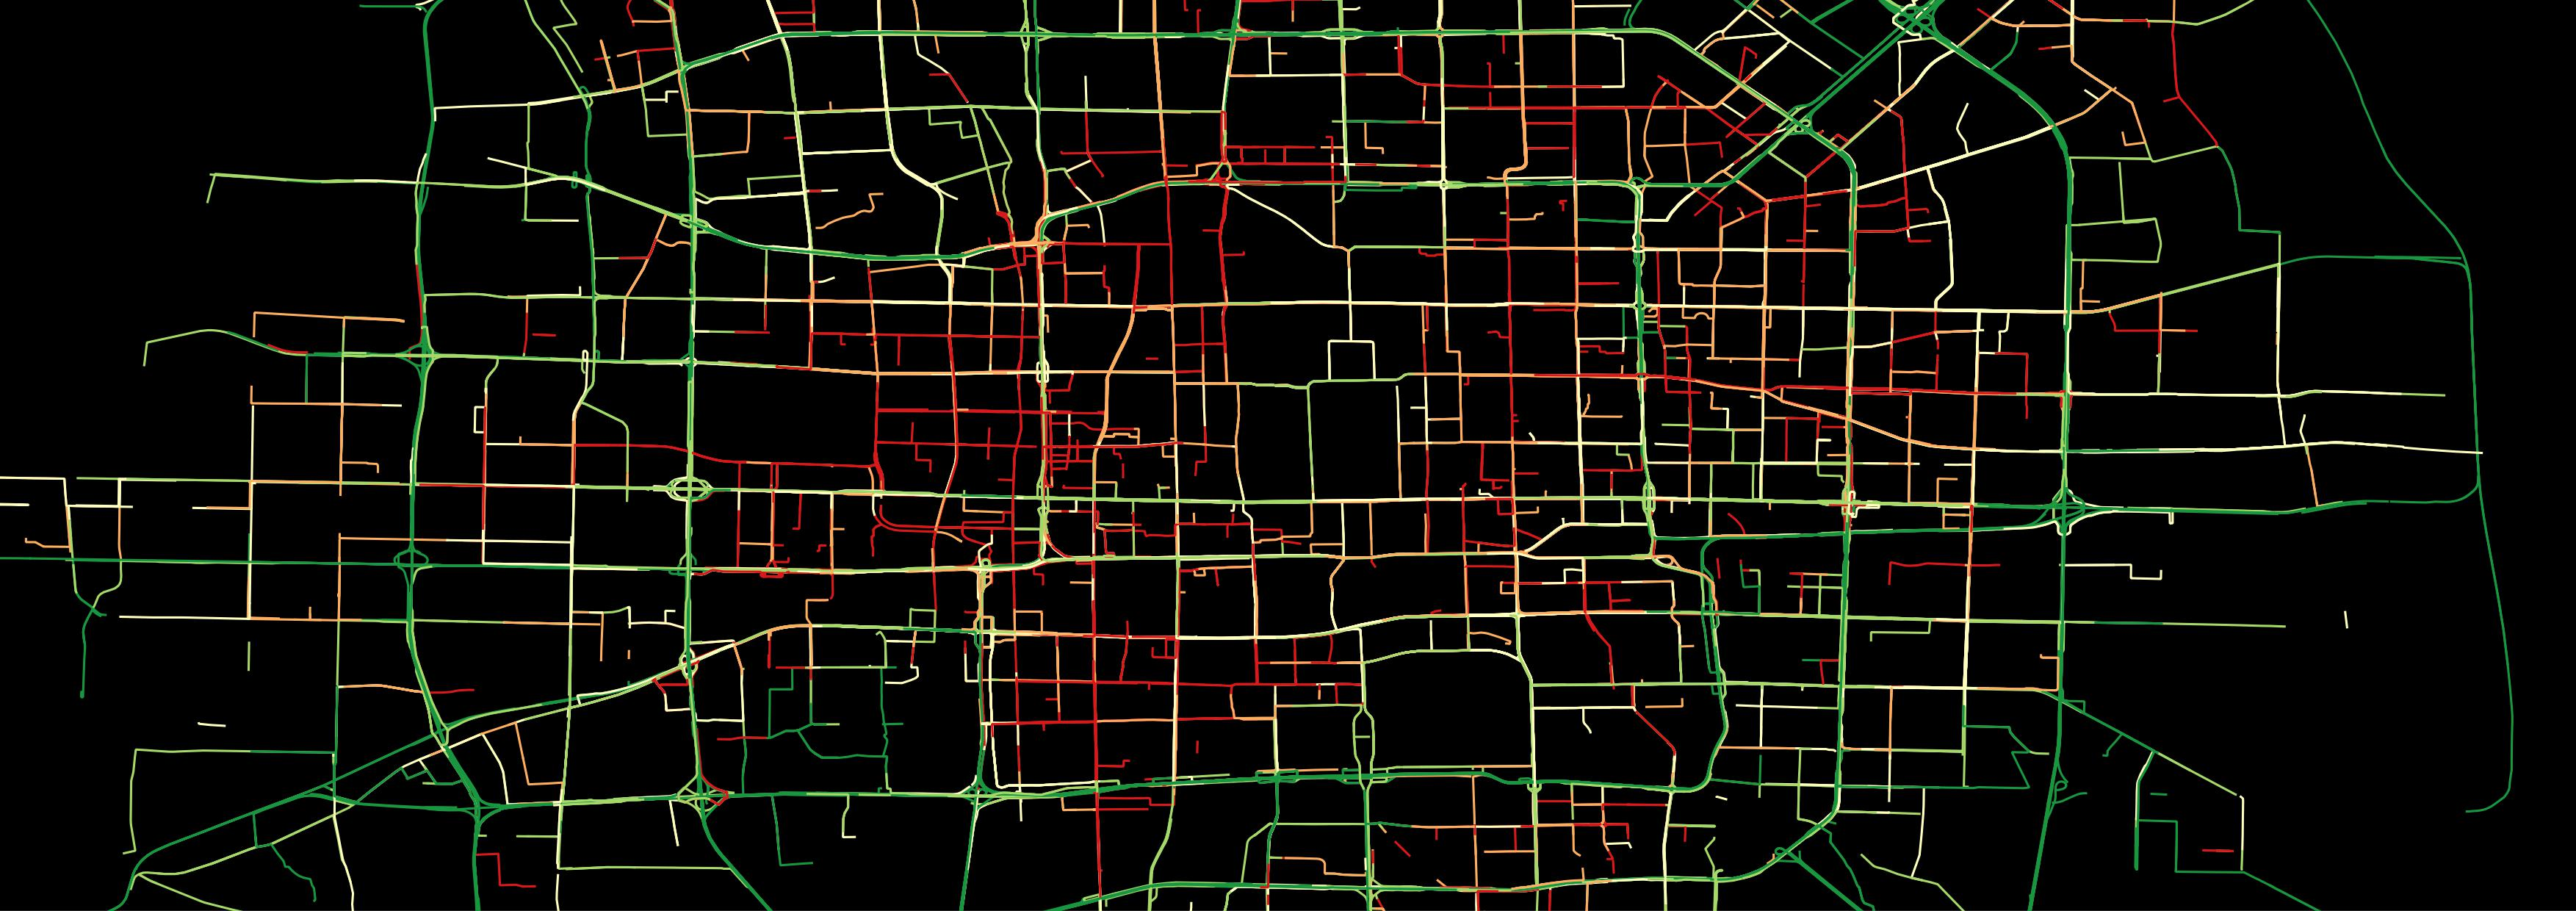 GPS data from taxis in Beijing